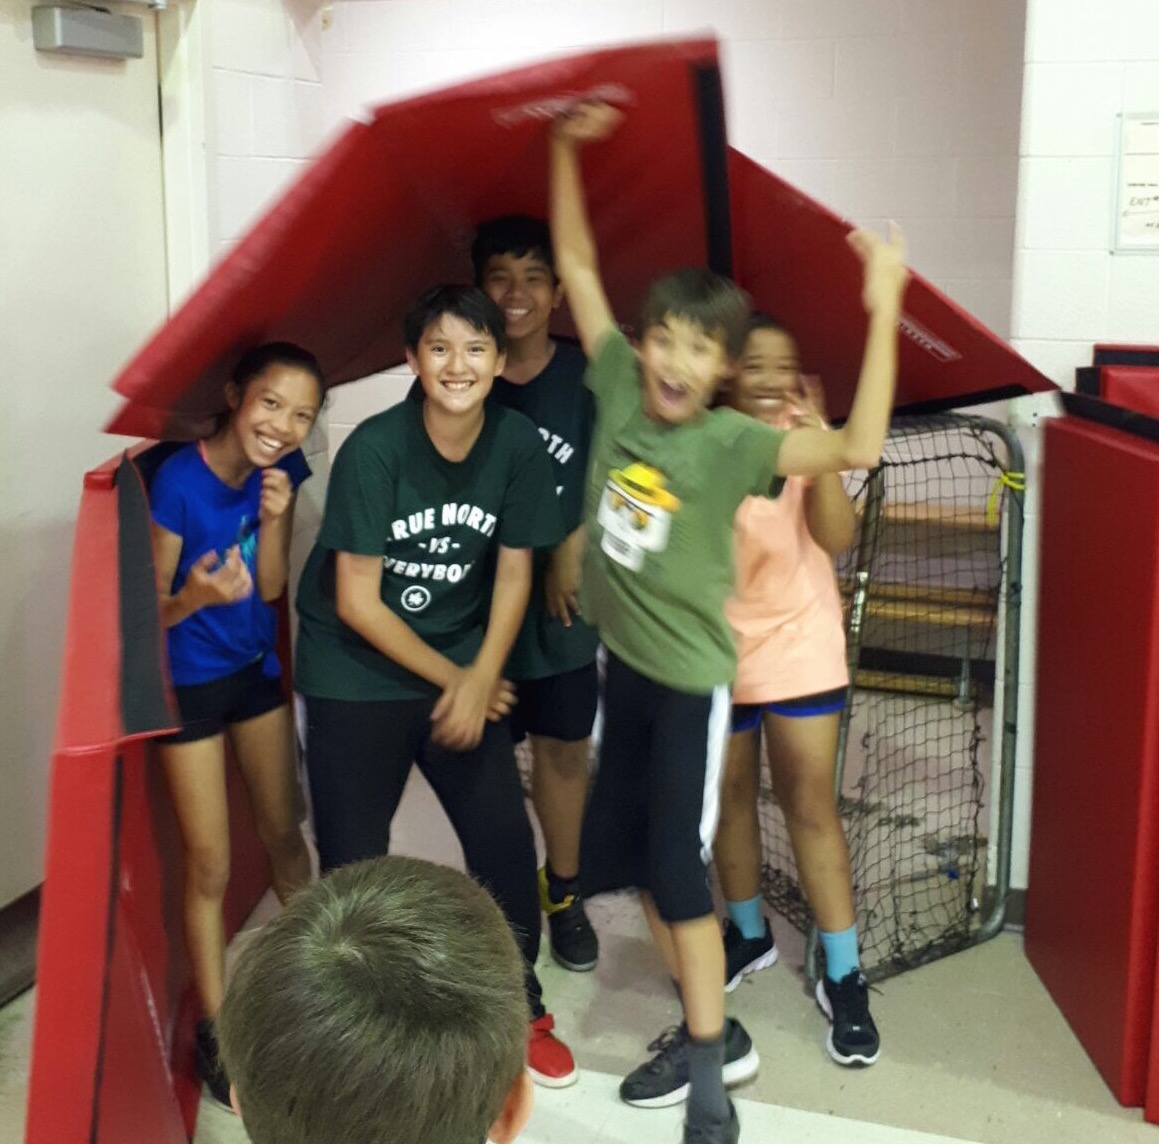 Kids having fun at our after school sports program in Toronto, Markham, Whitby, Etobicoke and Hamilton